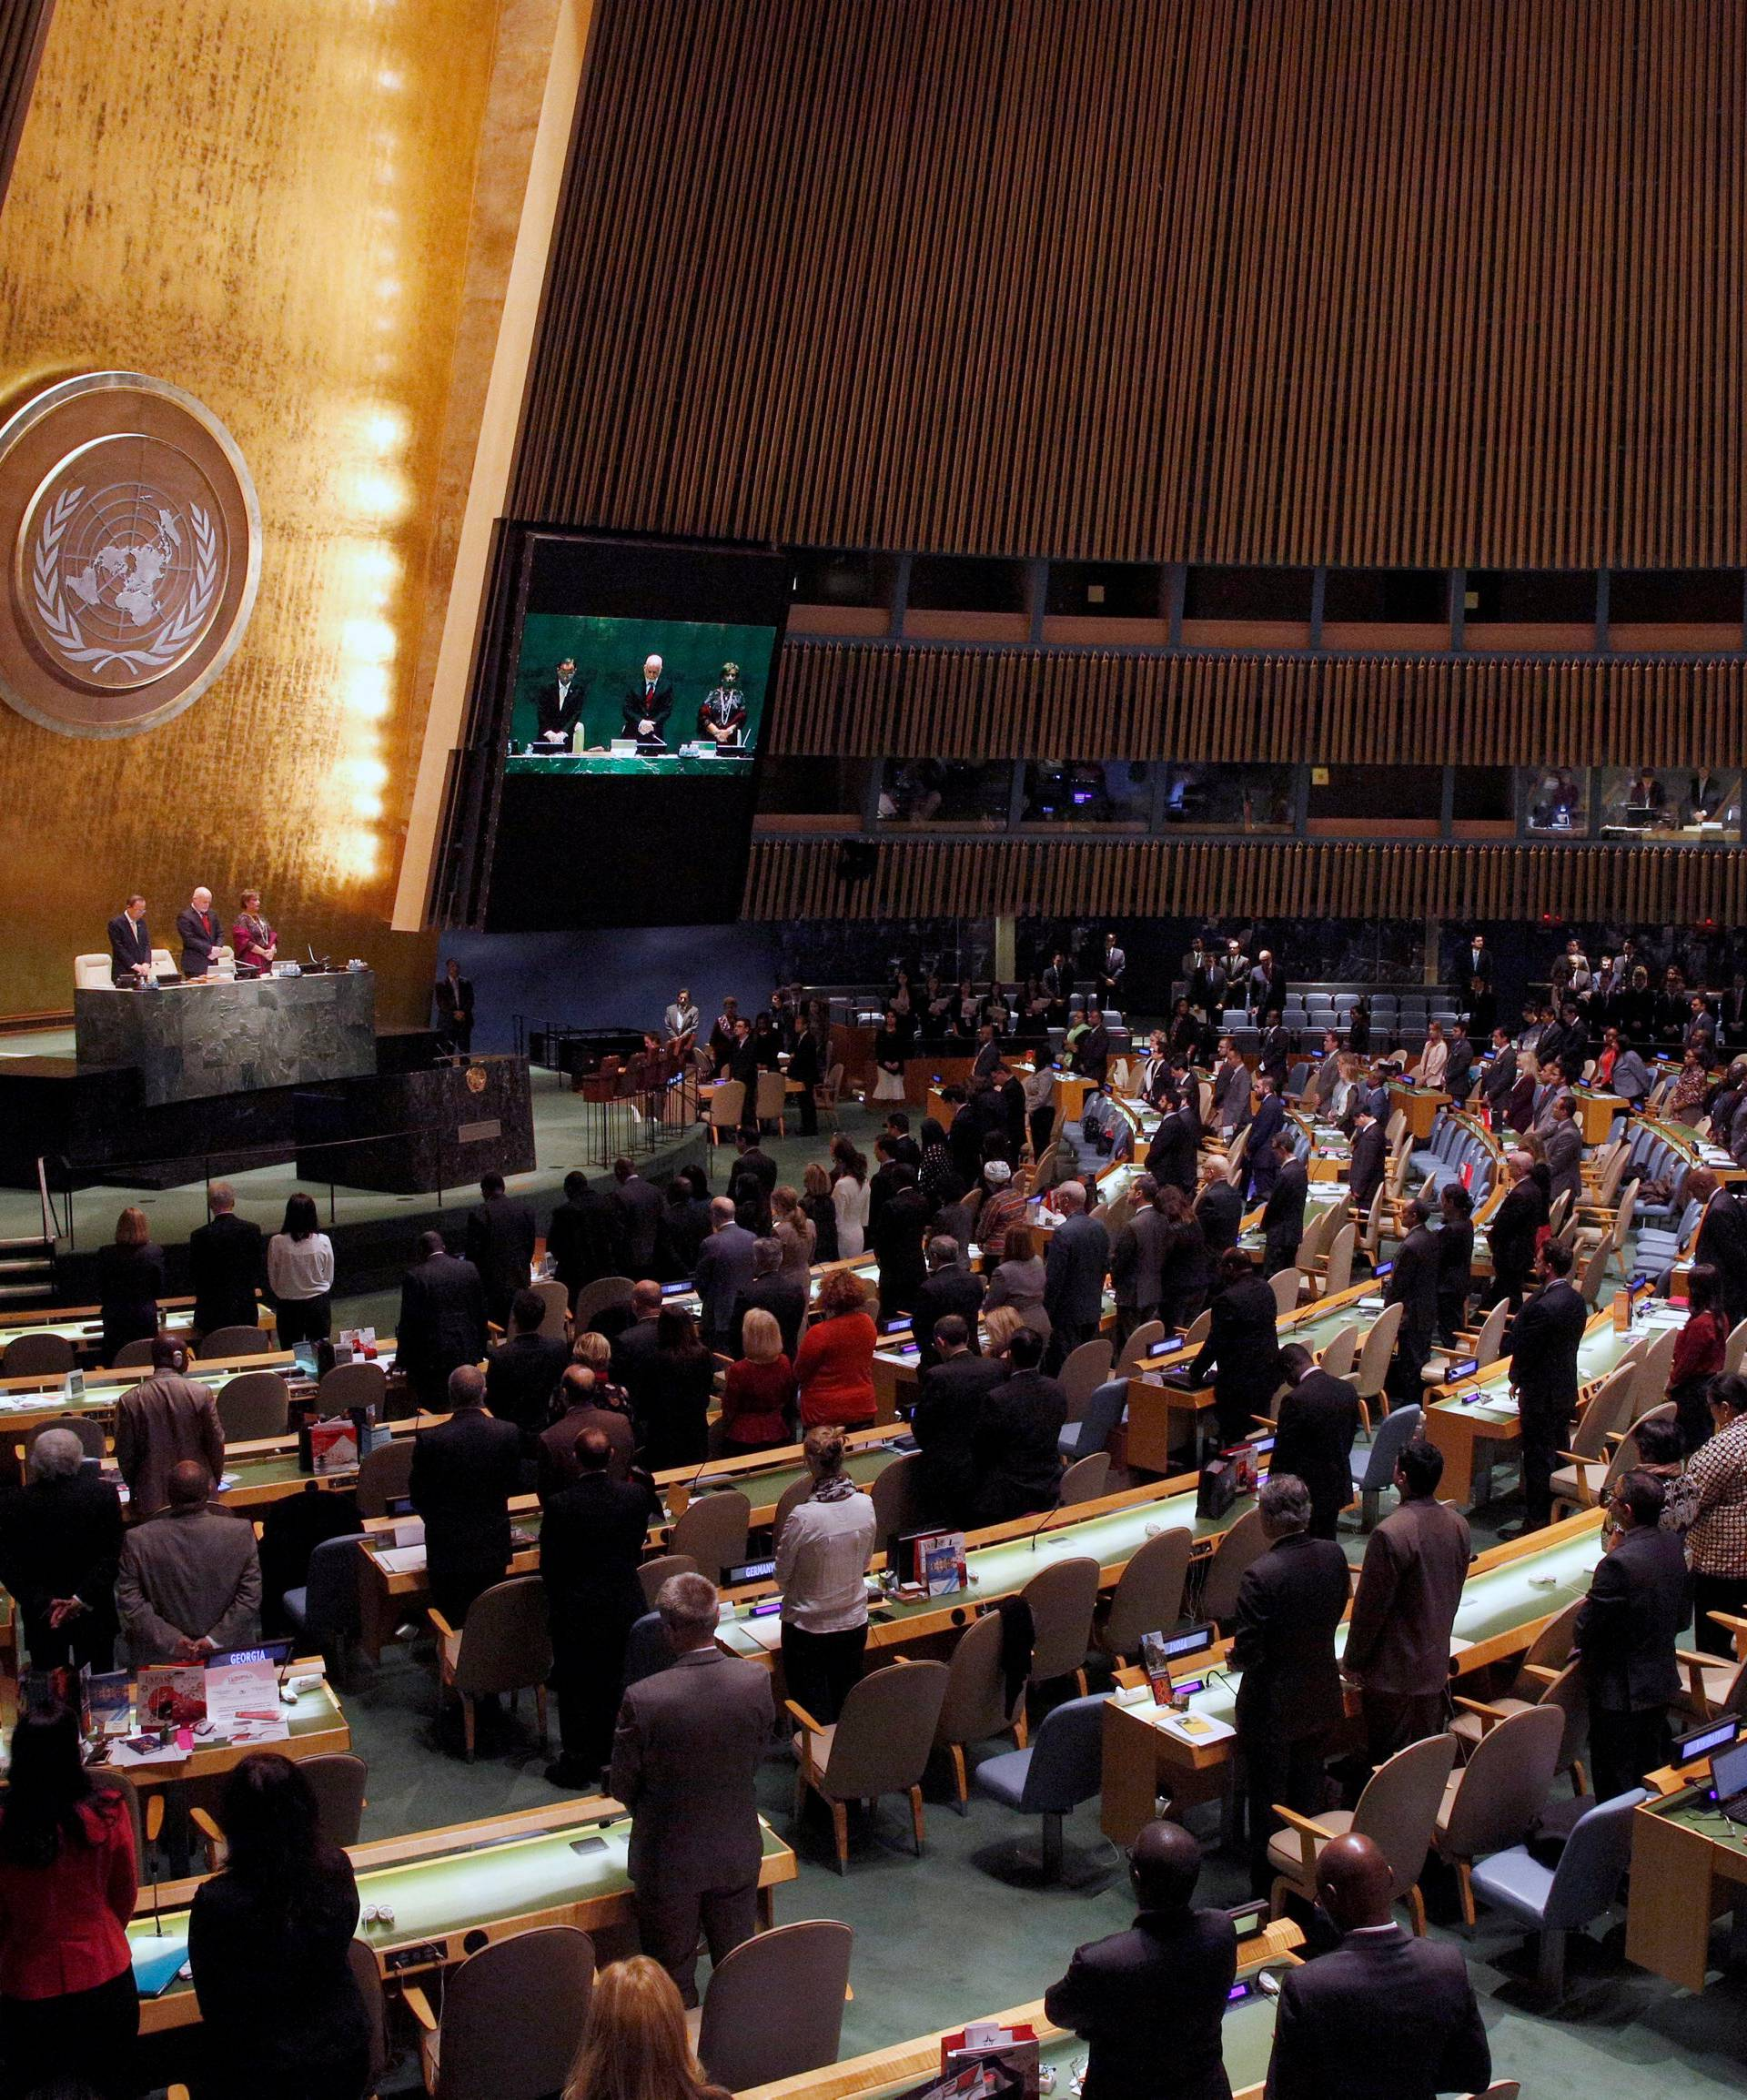 United Nations General Assembly observes a moment of silence during a tribute to the late King of Thailand Bhumibol Adulyadej